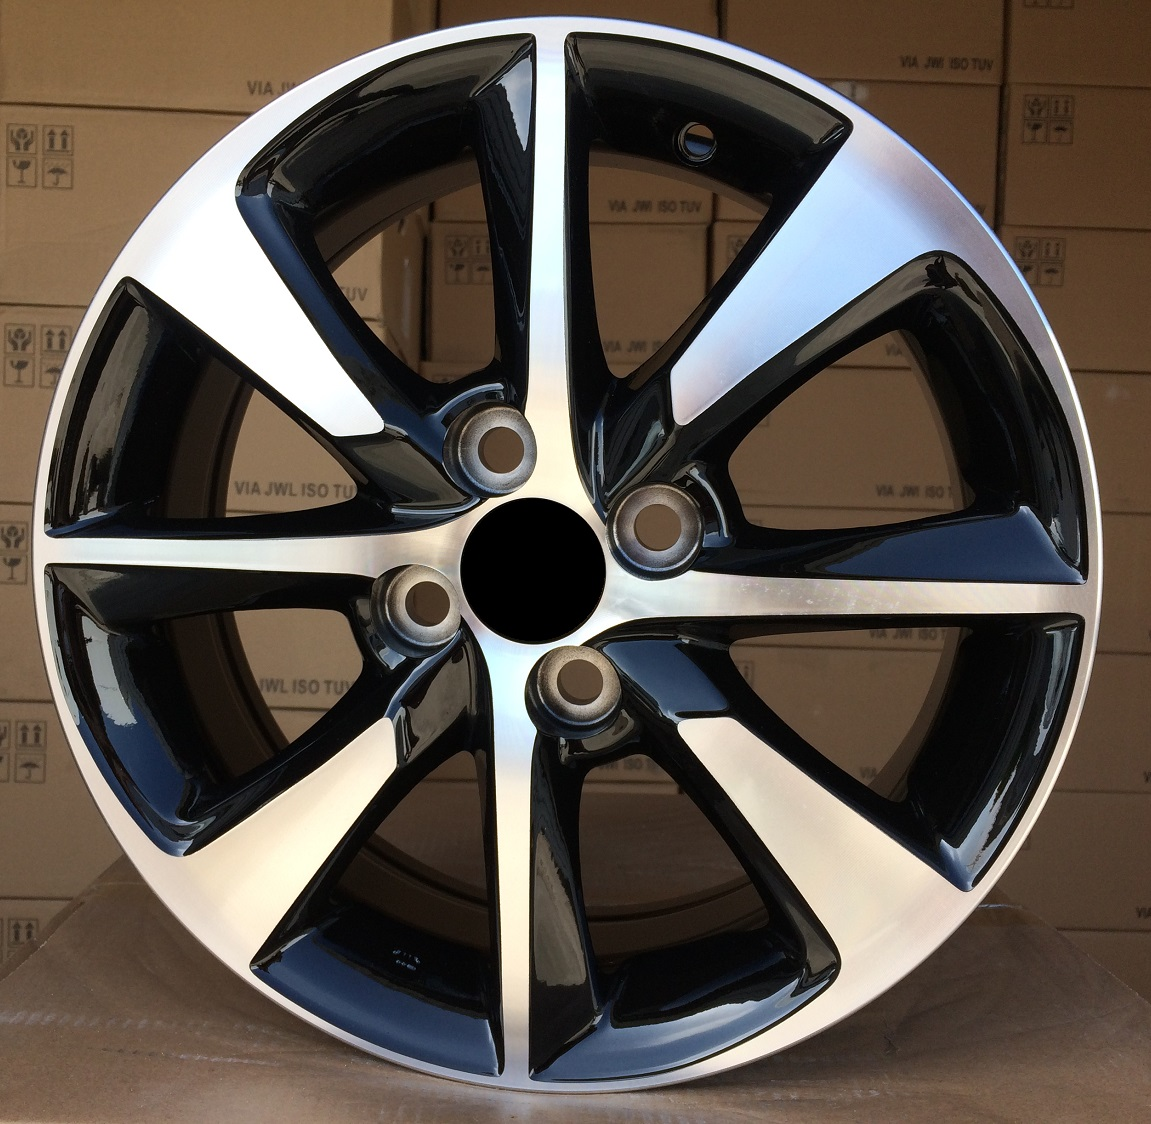 T14X5.5 4X100 ET40 54.1 TL8166 MB+POWDER COATING RWR TOY (+2eur) (D5)## 5.5x14 ET41 4x100